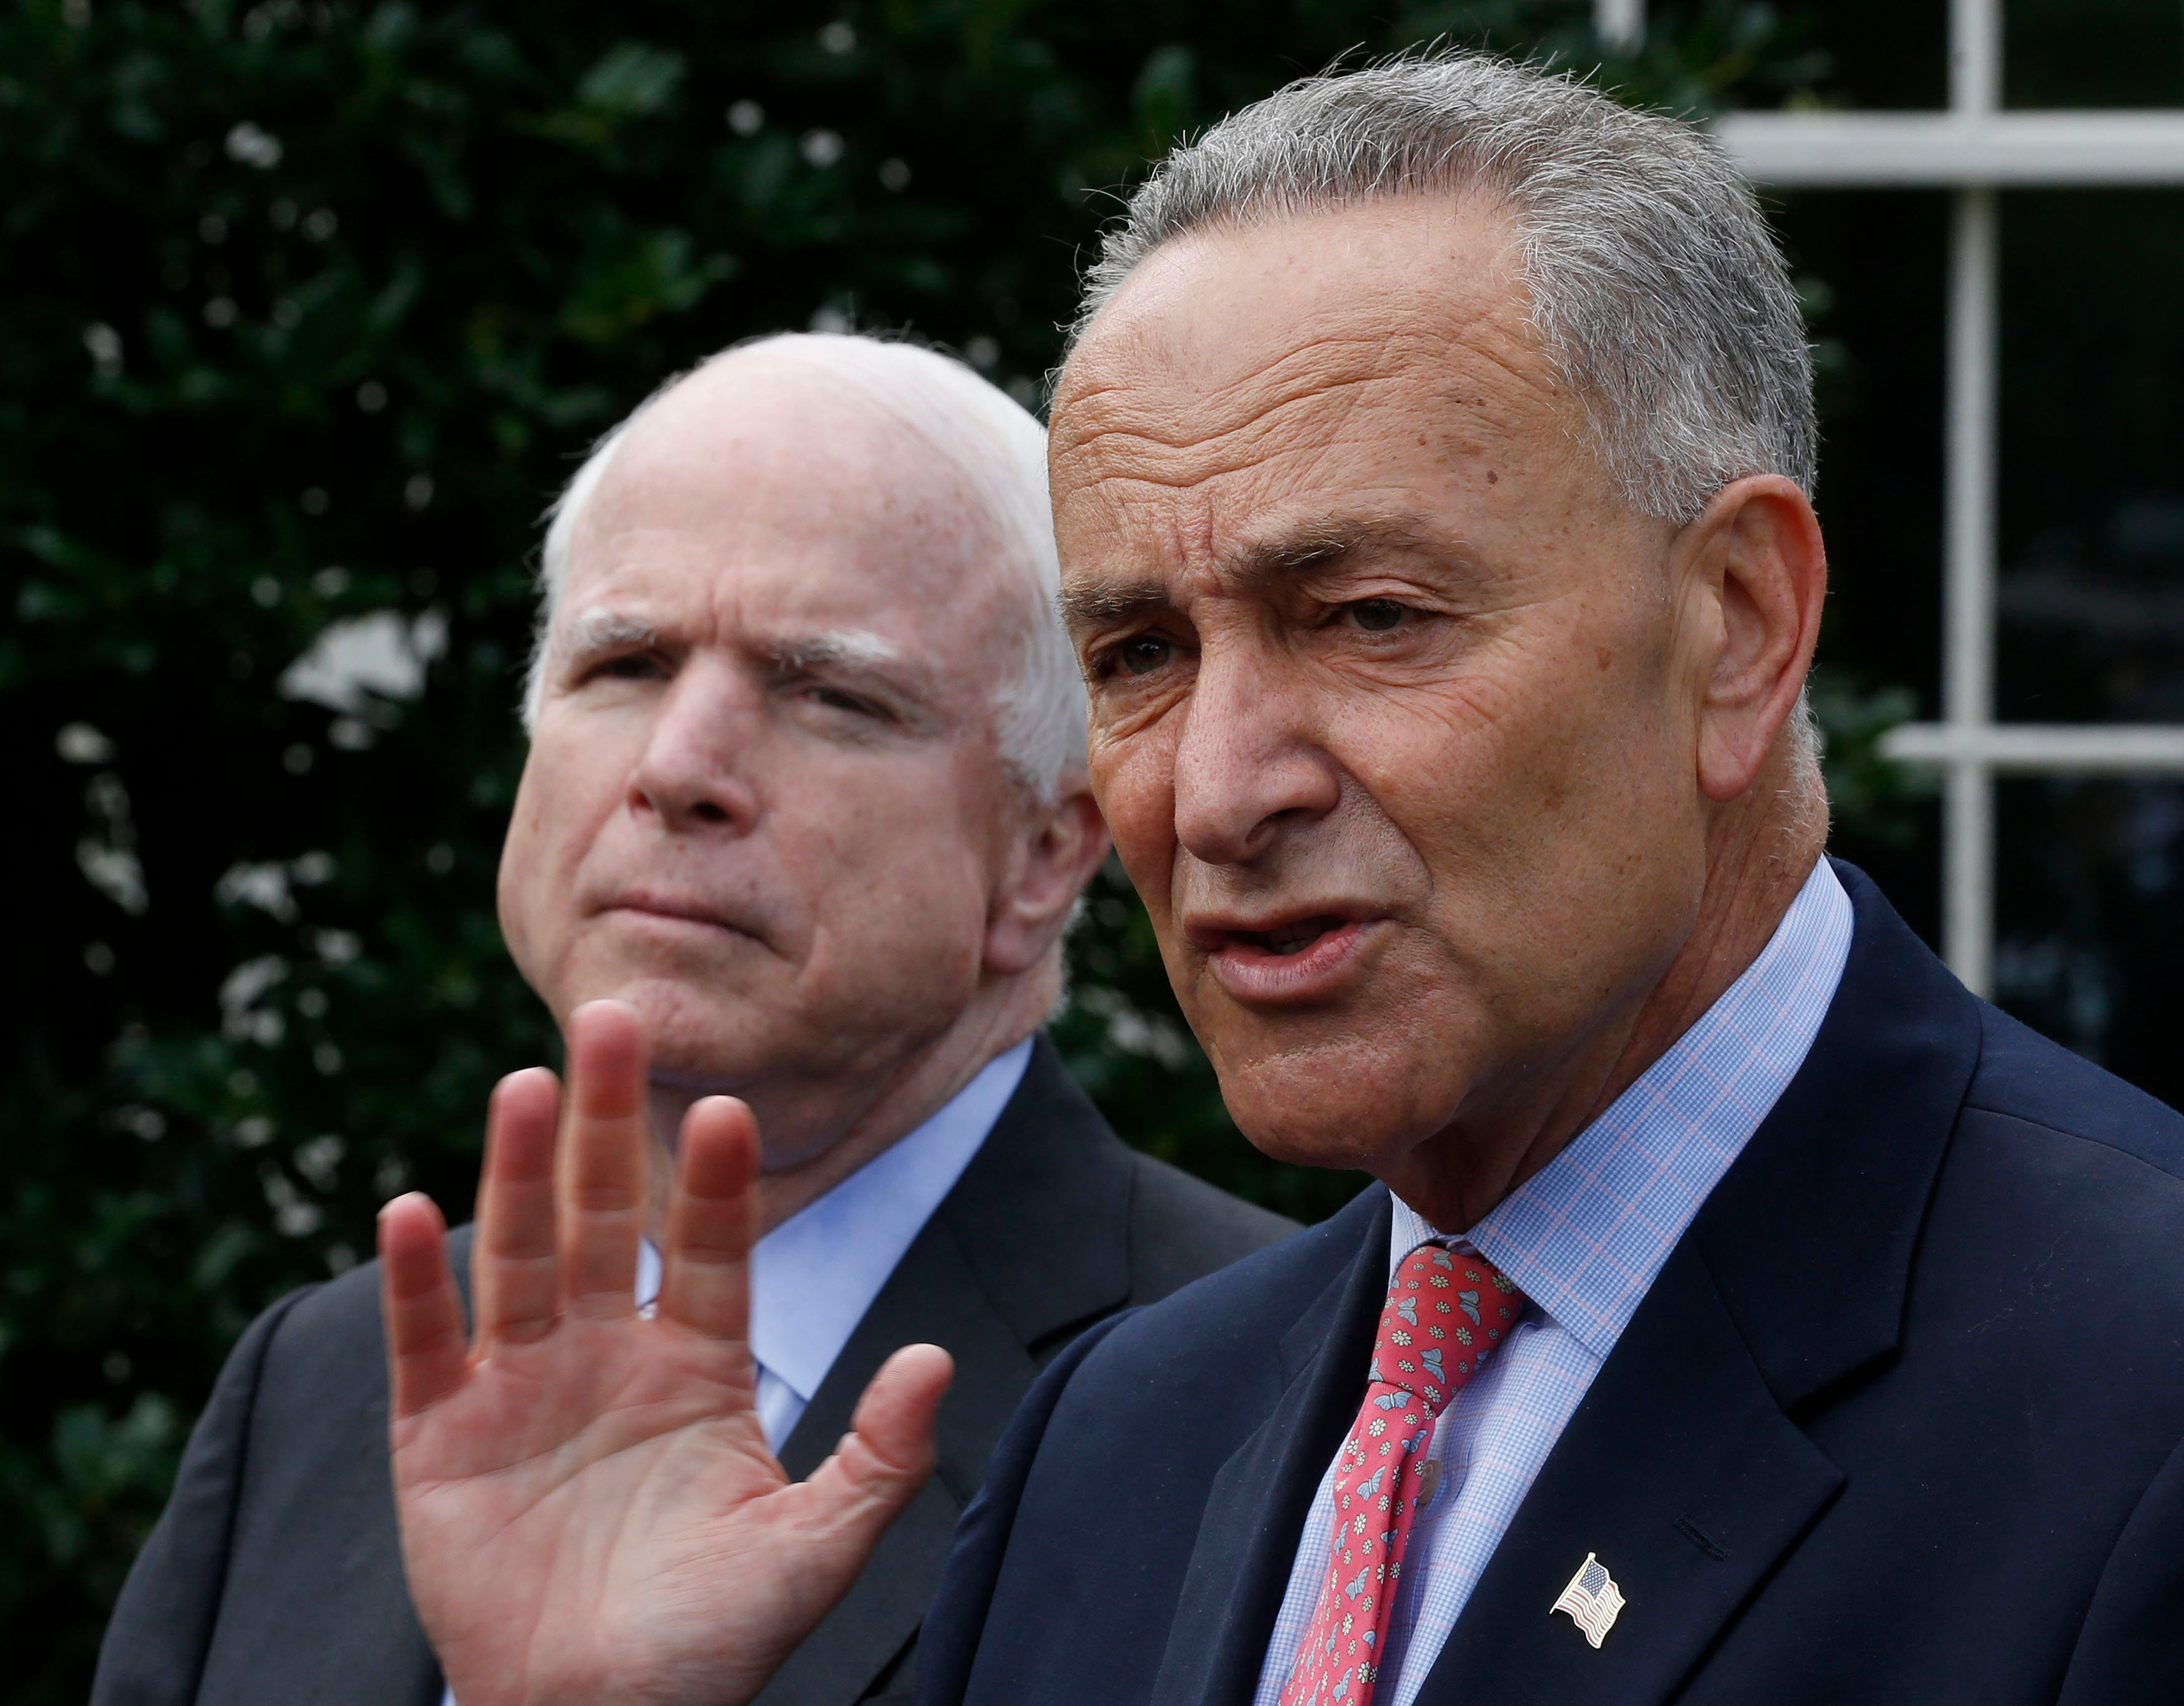 U.S. Senators Charles Schumer (D-NY), R, and John McCain (R-AZ) speak to the media after meeting with U.S. President Barack Obama about immigration reform in Washington July 11, 2013. REUTERS/Larry Downing  (UNITED STATES - Tags: POLITICS SOCIETY IMMIGRATION)